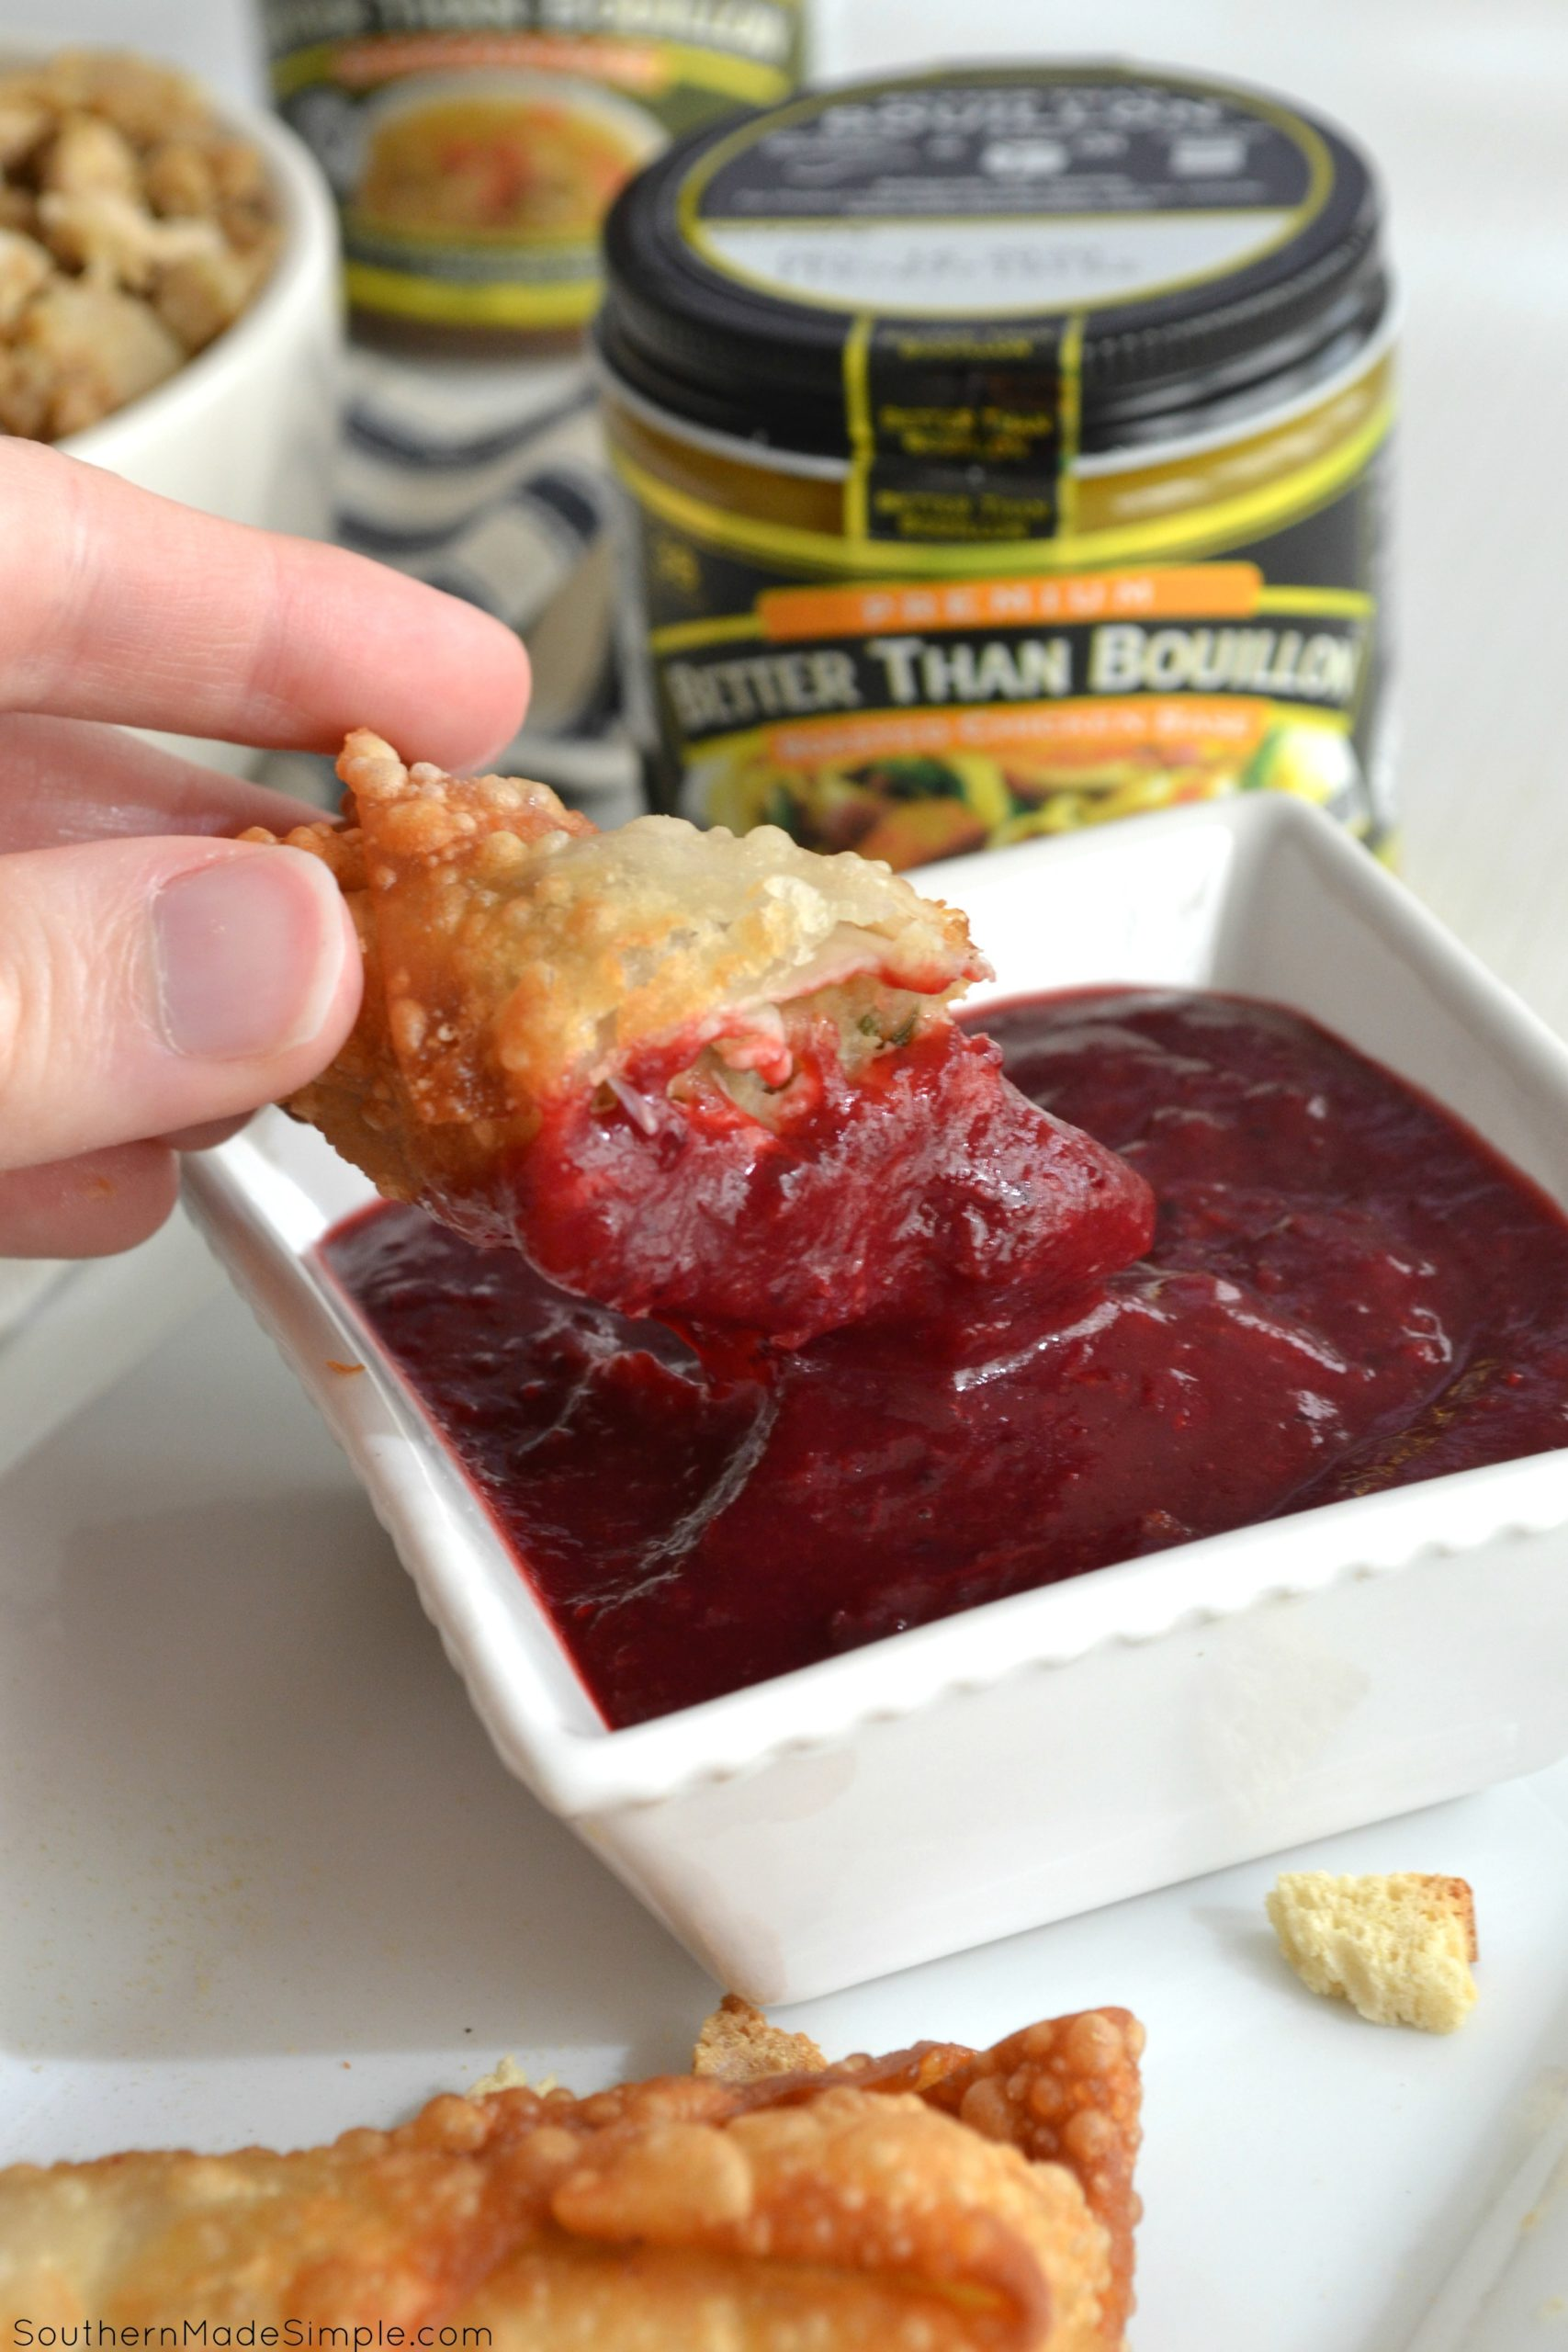 These Turkey and Dressing Stuffed Egg Rolls with Cranberry Dipping Sauce are the perfect twist to the classic Thanksgiving dish, and they're bursting with flavor from a smidge of Better Than Bouillon! #ad #HolidaysWithBTB #BTBHolidayRecipes #IC